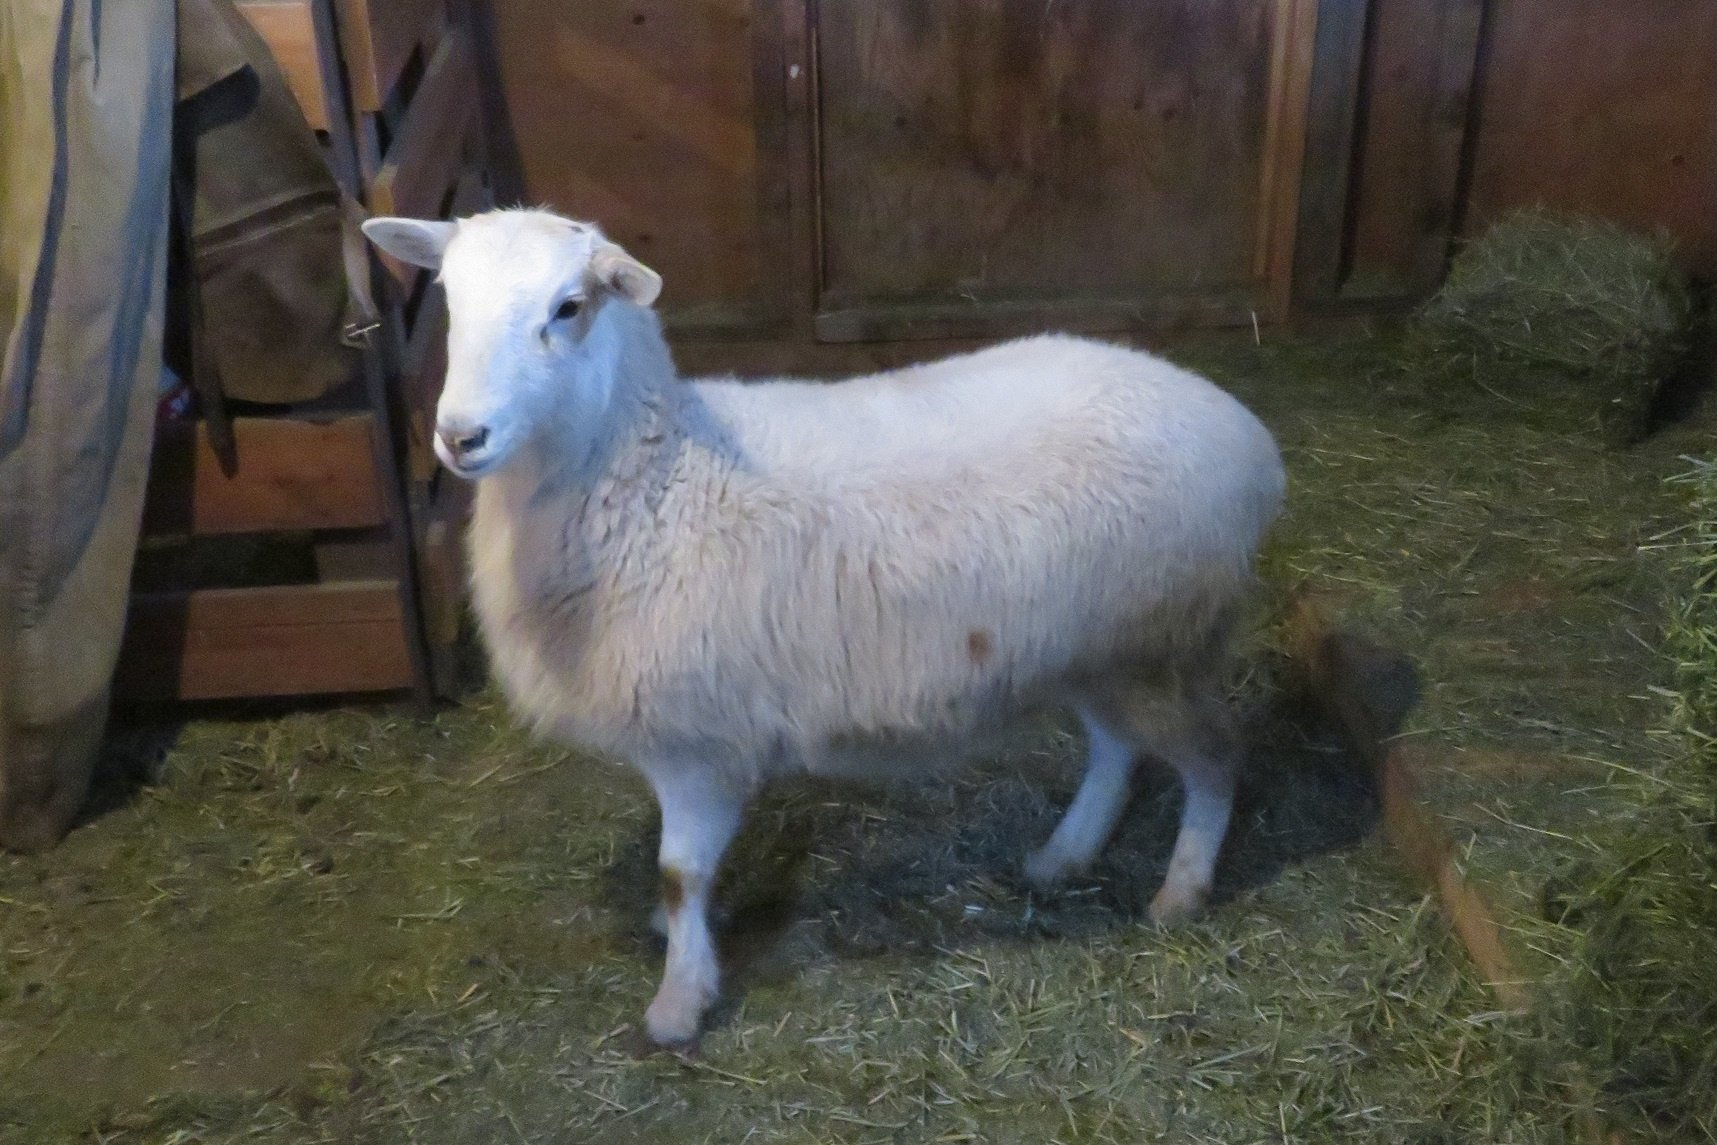 Big Rock Sierra for sale(issues-please inquire) ram & ewe lamb- pending picture